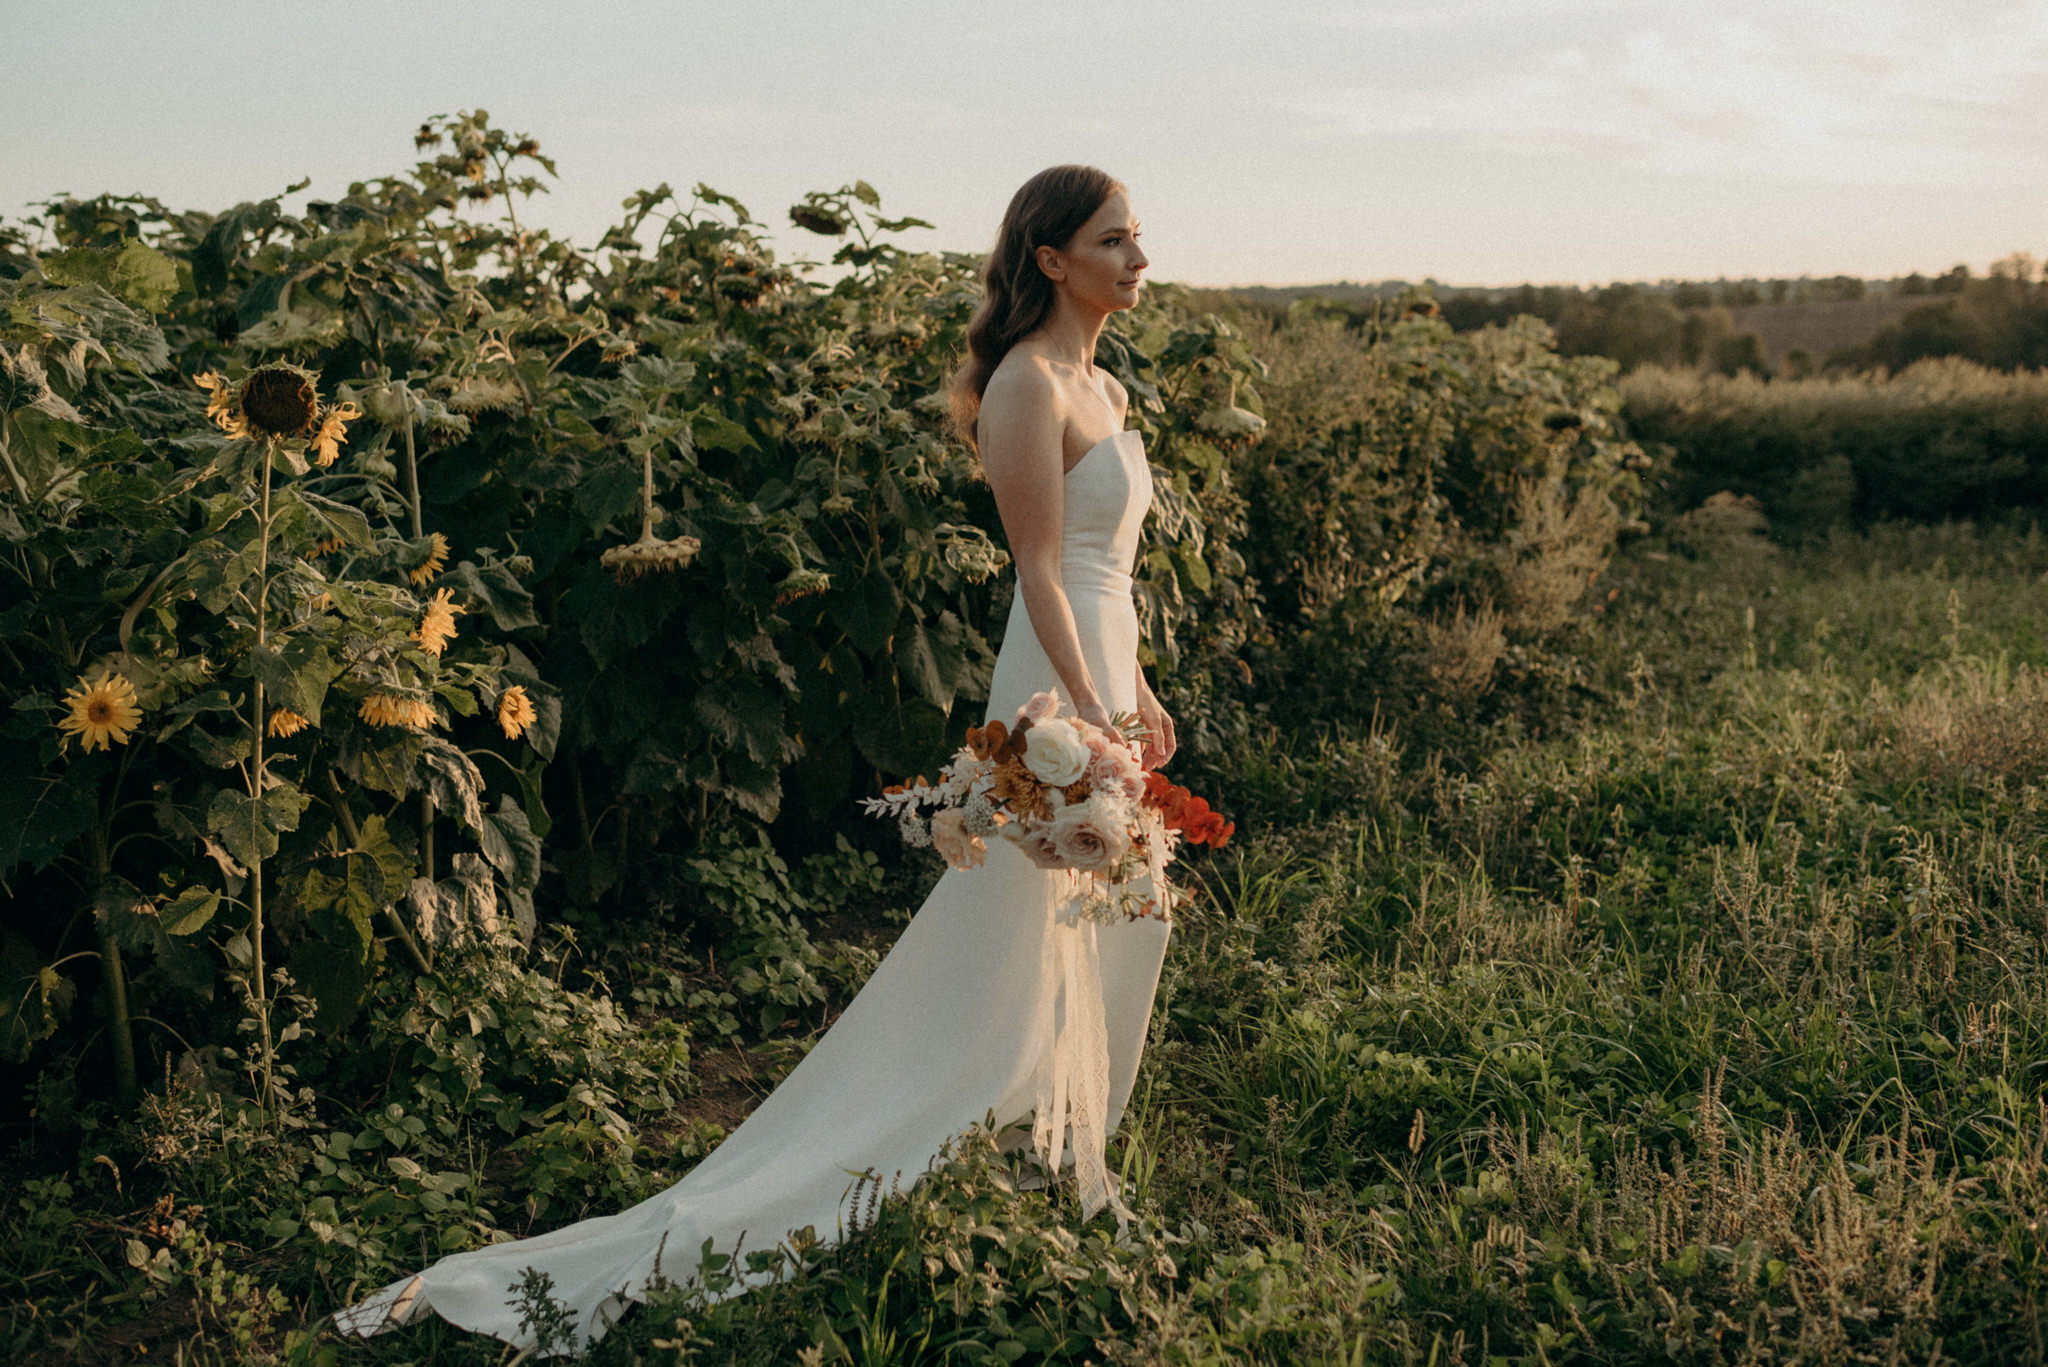 Wedding portraits in a sunflower field at sunset. Good Family Farms wedding.